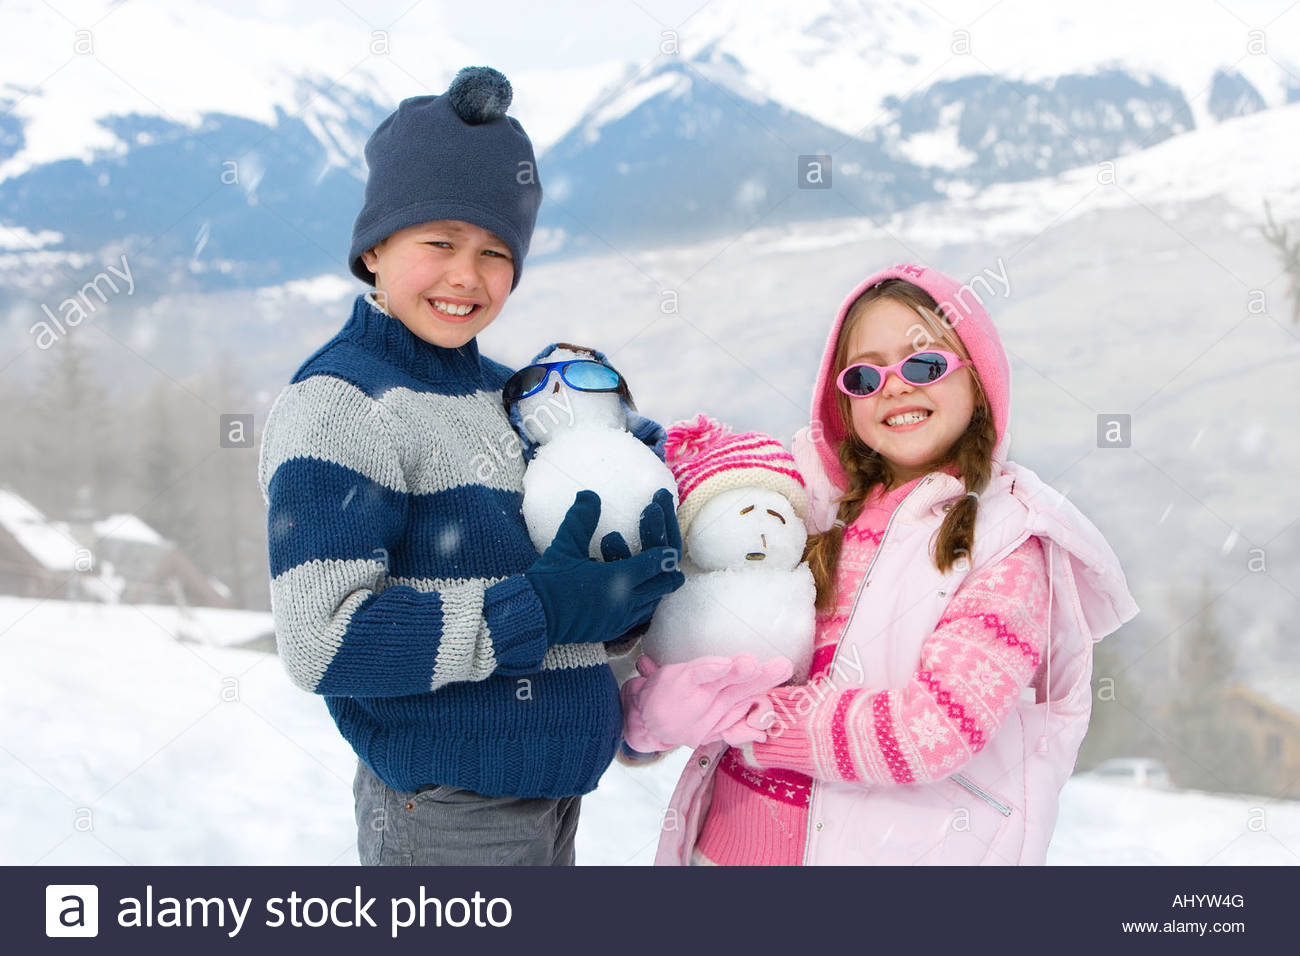 Wearing Wool Hats Stock Photos   Wearing Wool Hats Stock Images - Alamy c587e675a082